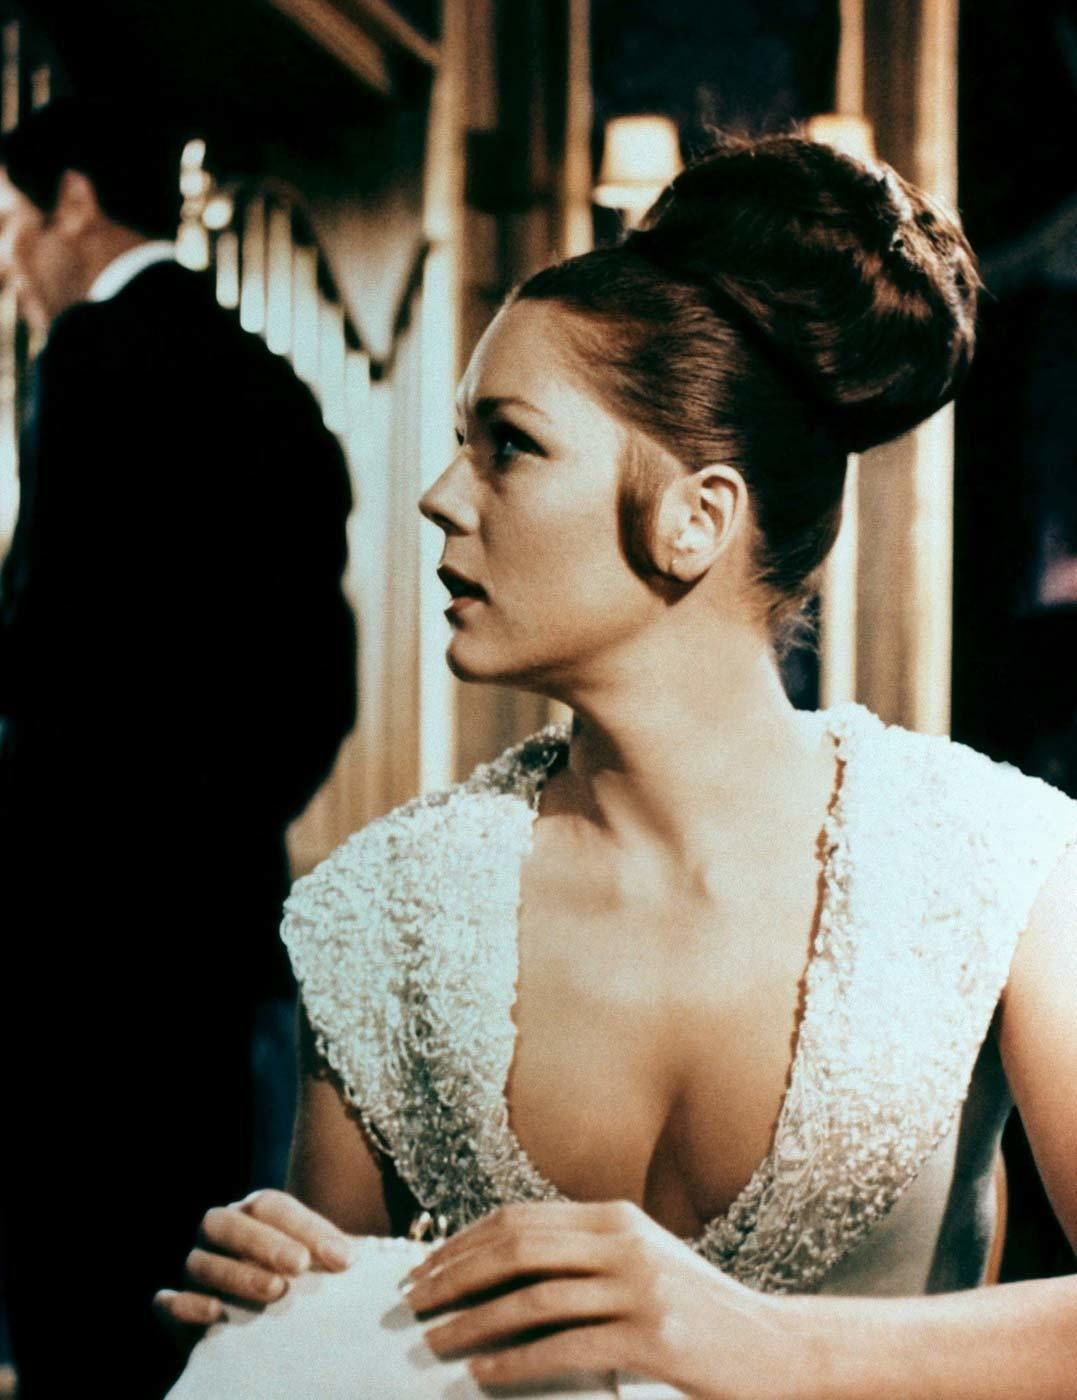 the most iconic bond girl hairstyles of all time | bond prom